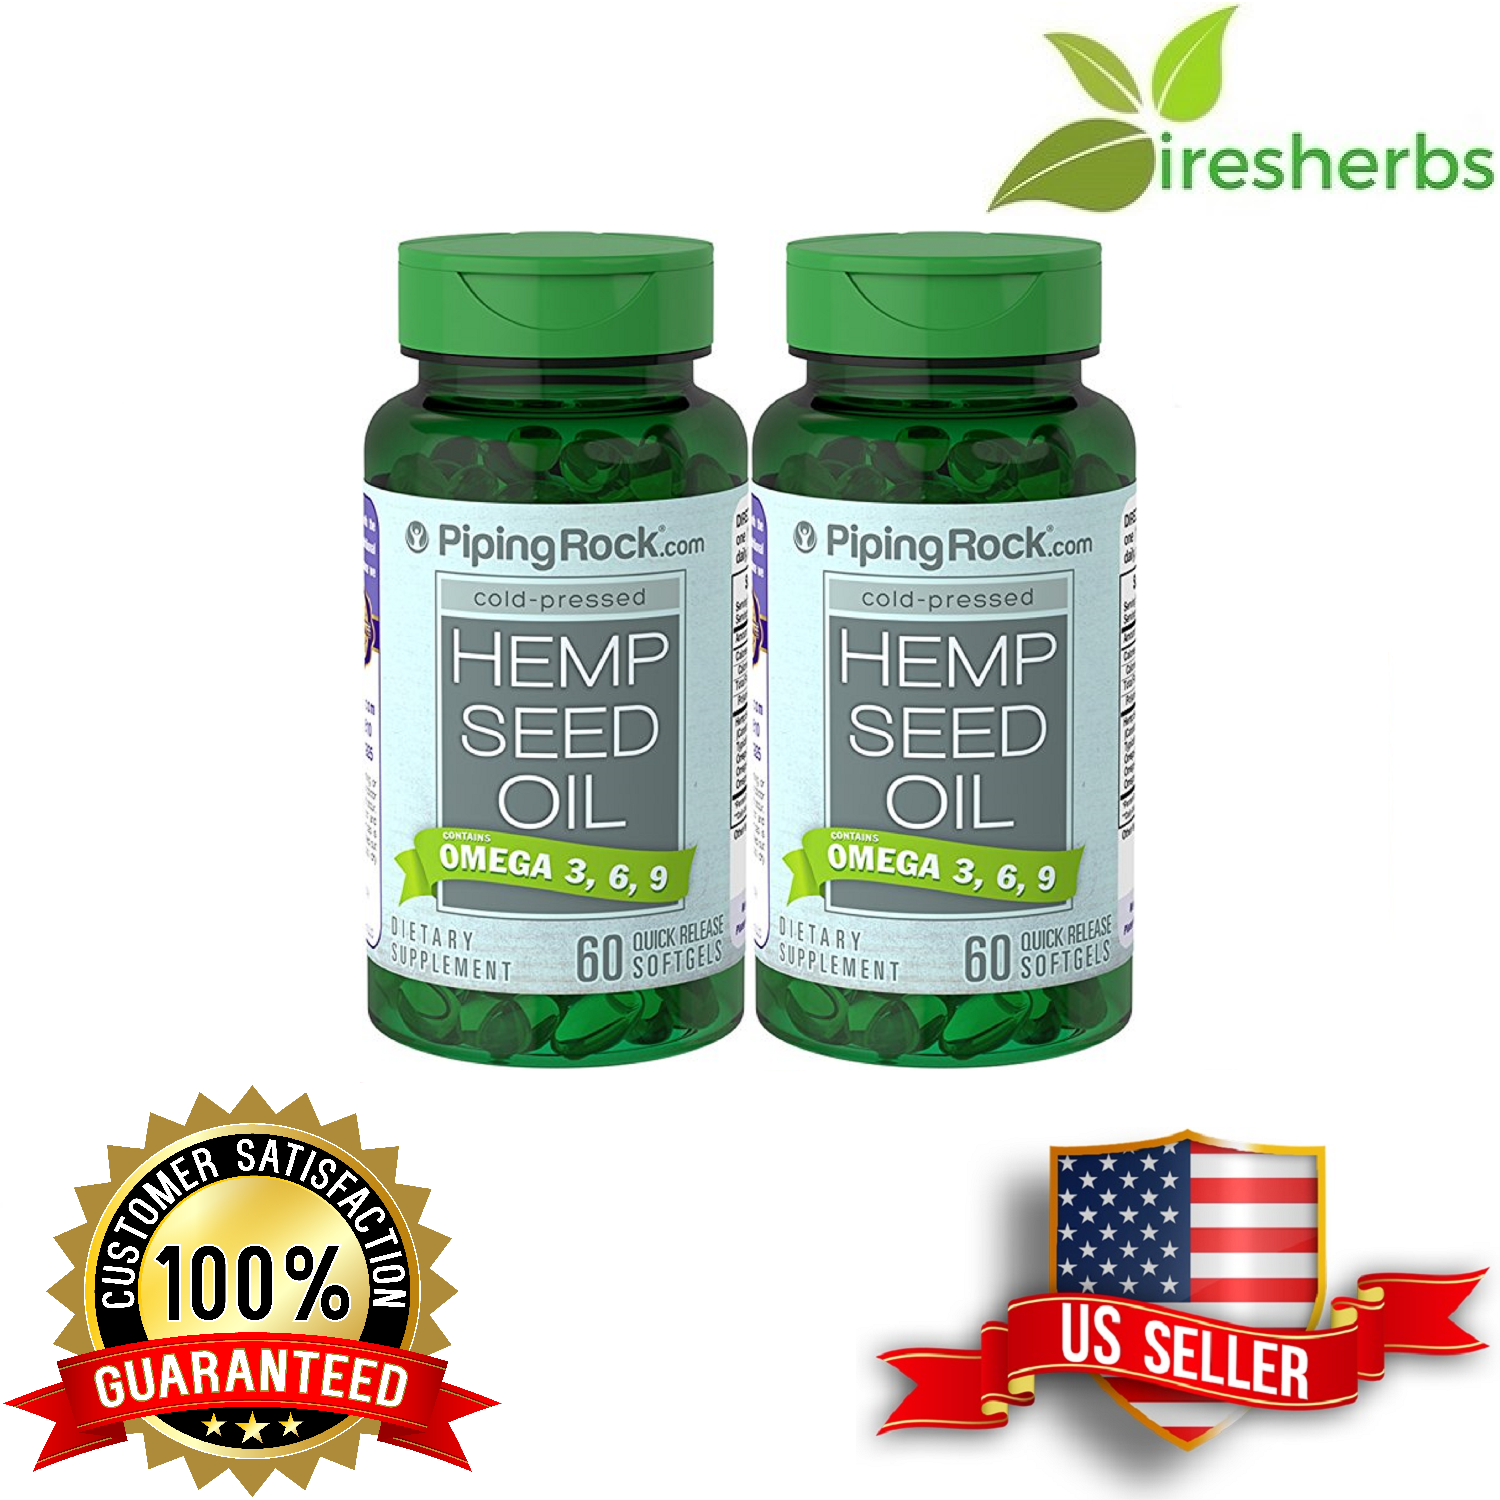 HEMP SEED OIL COLD PRESSED OMEGA 3-6-9 700mg DIET HEALTH SUPPLEMENT 120 SOFTGELS